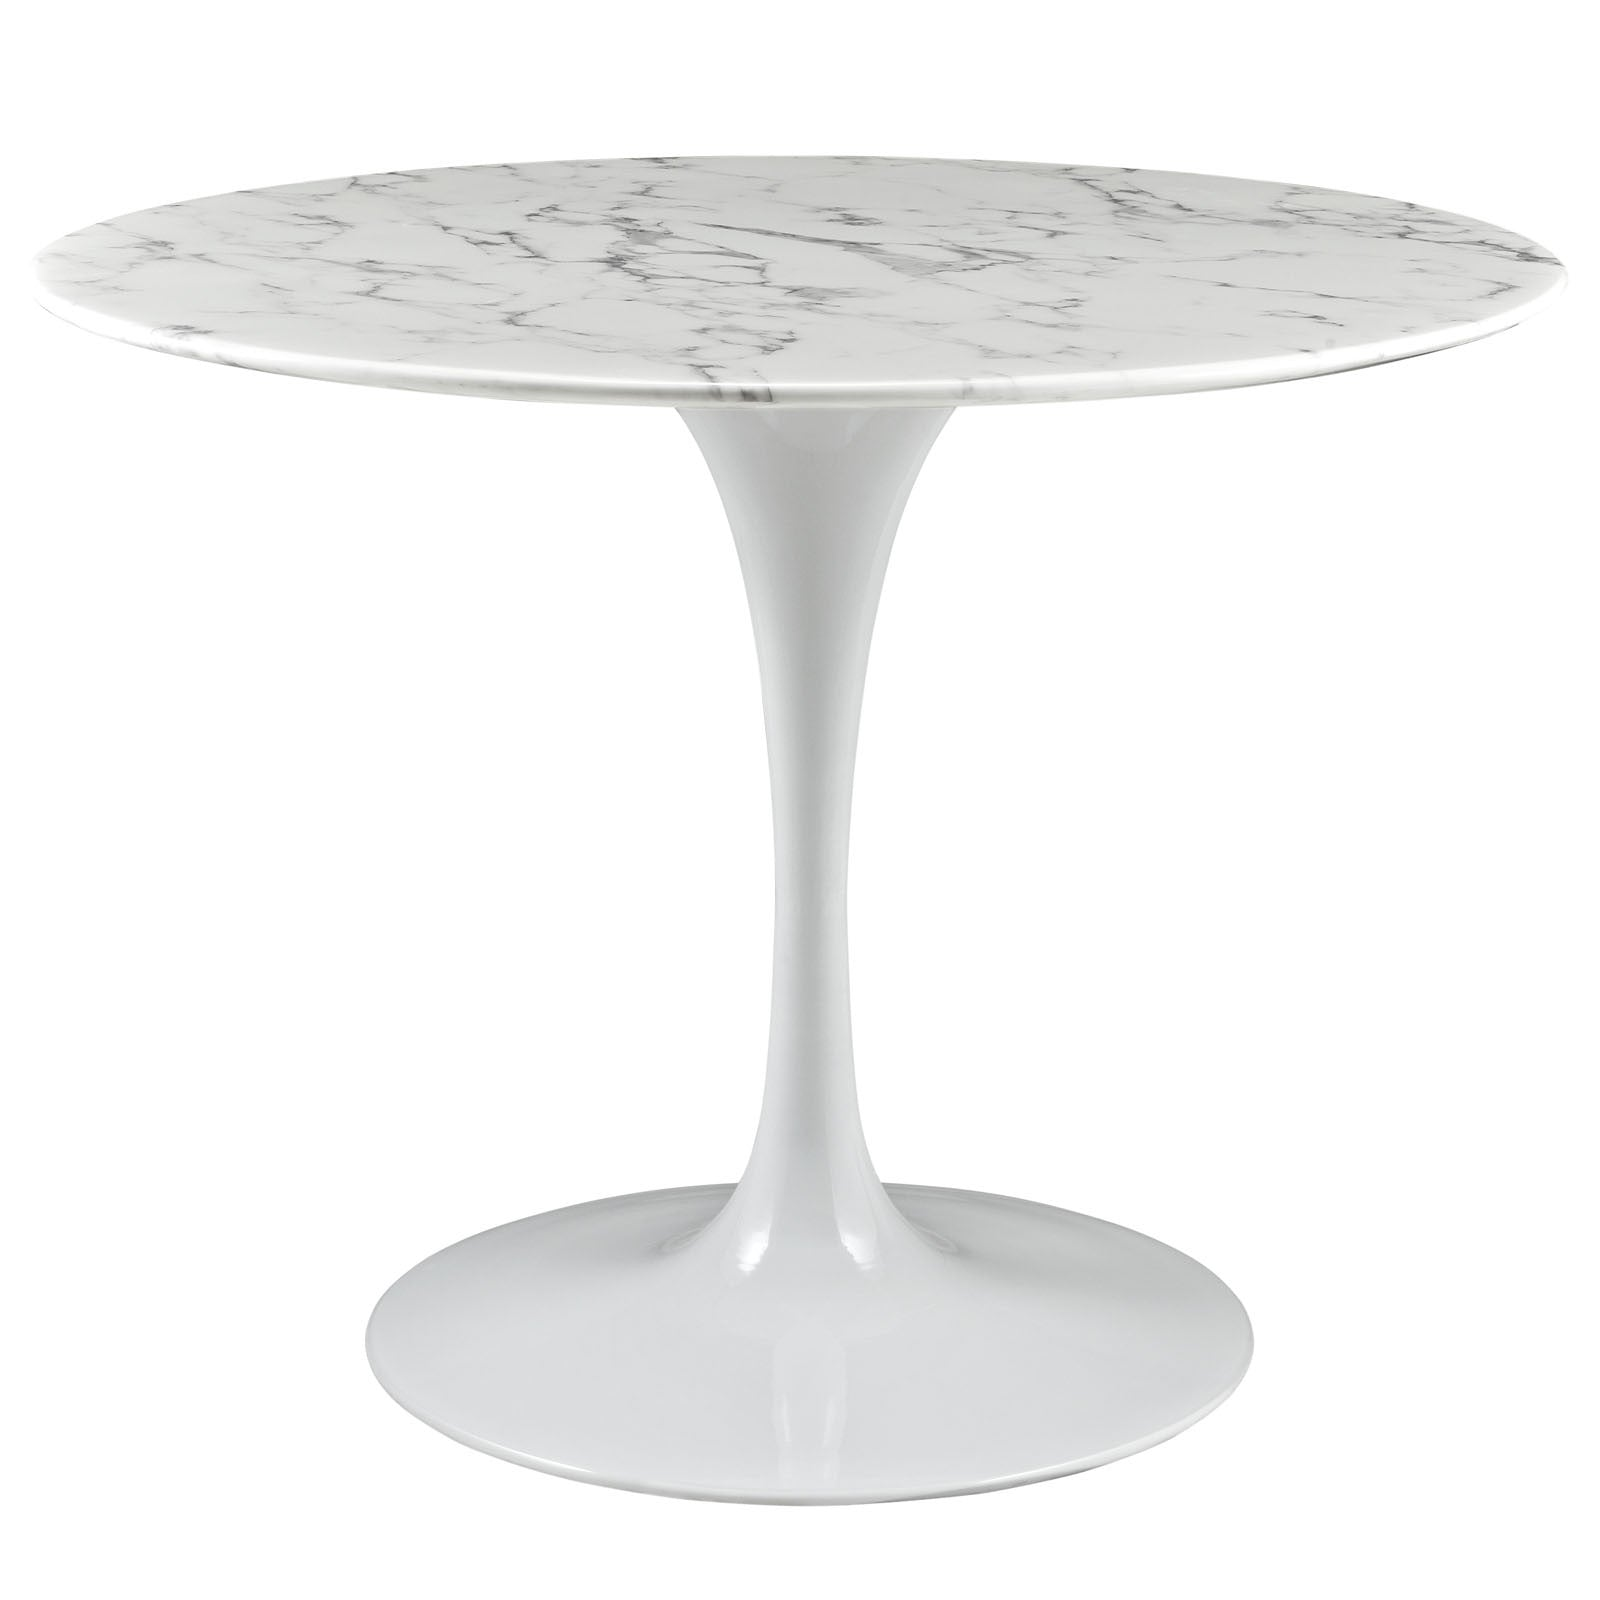 Picture of: Lippa 40 Round Artificial Marble Top Dining Table Online Interior Design Store And Service Provider